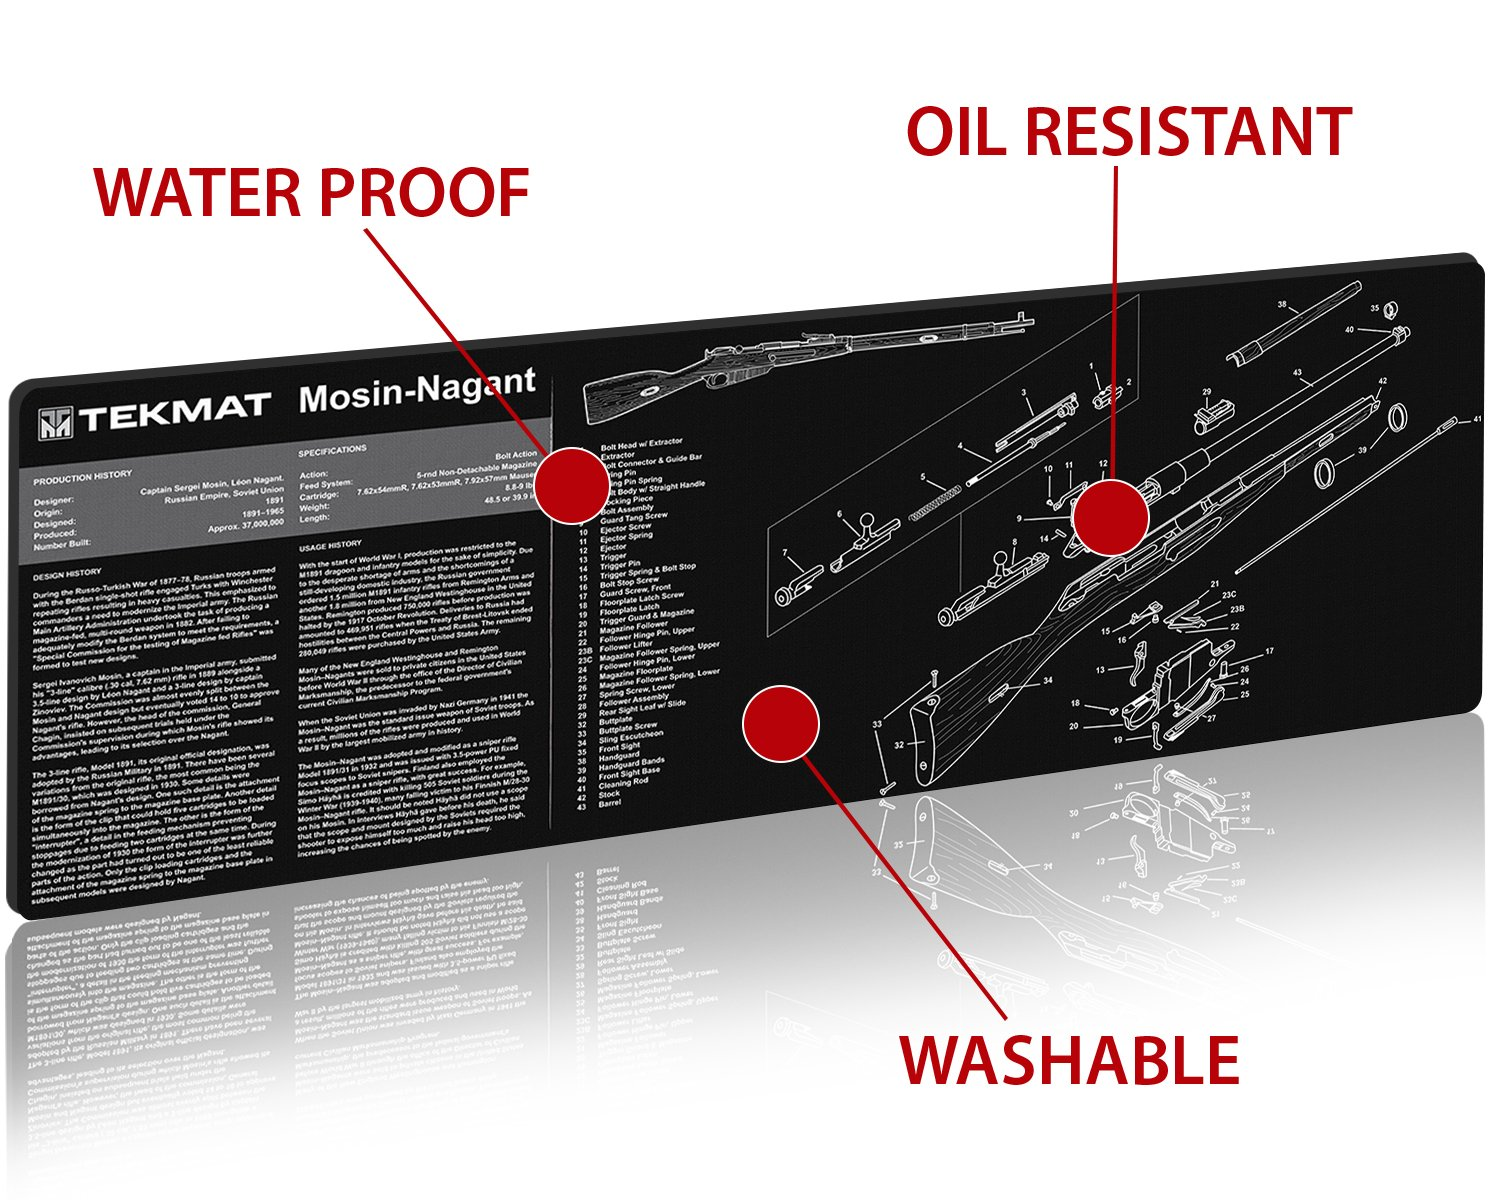 Tekmat Mosin Nagant Cleaning Mat 12 X 36 Thick Parts Diagram 91 30 Durable Waterproof Long Gun With And Instructions Armorers